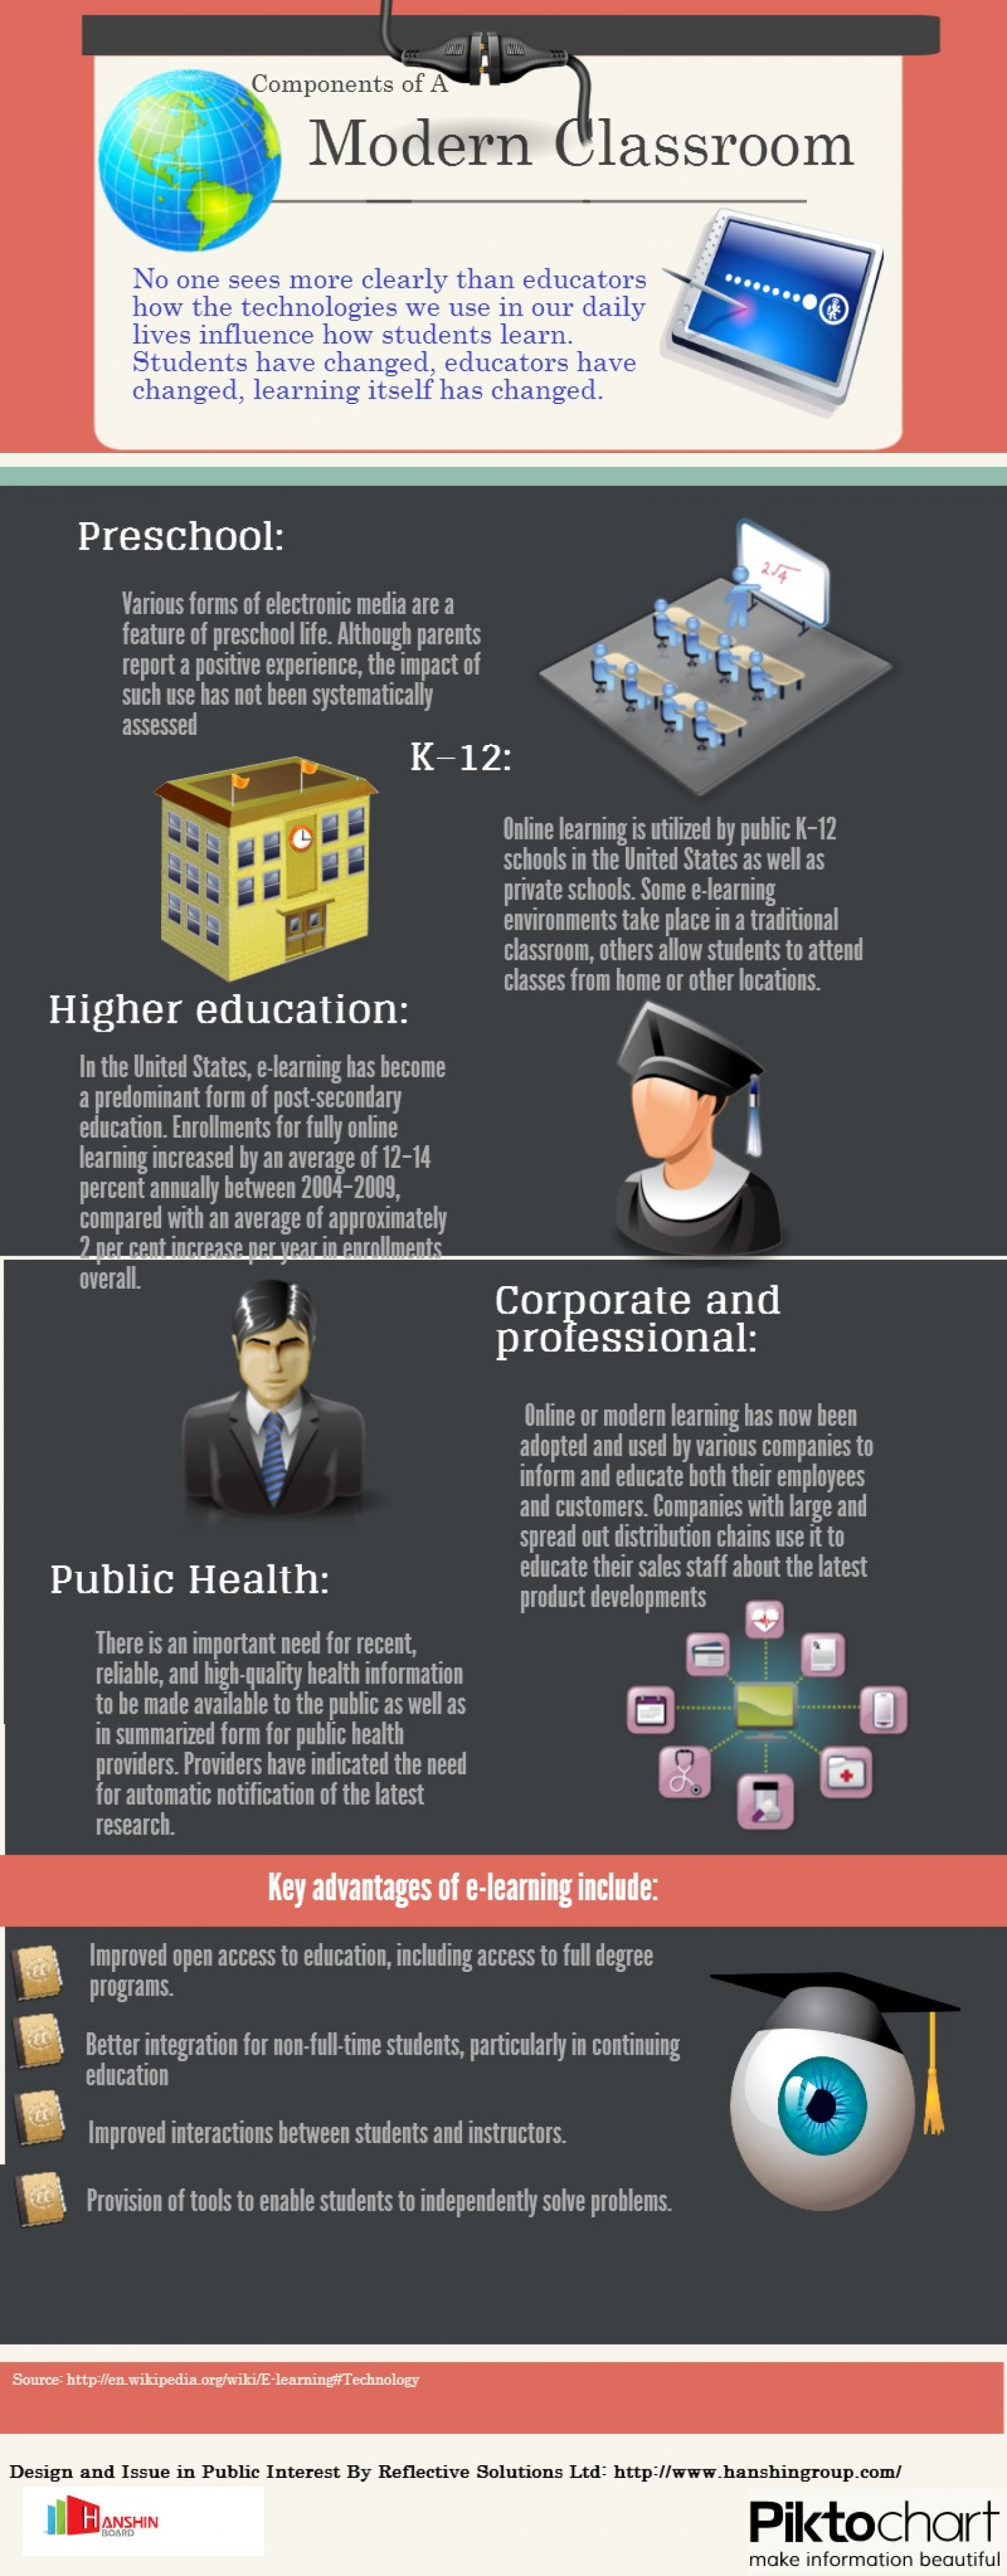 Components of a modern classroom Infographic